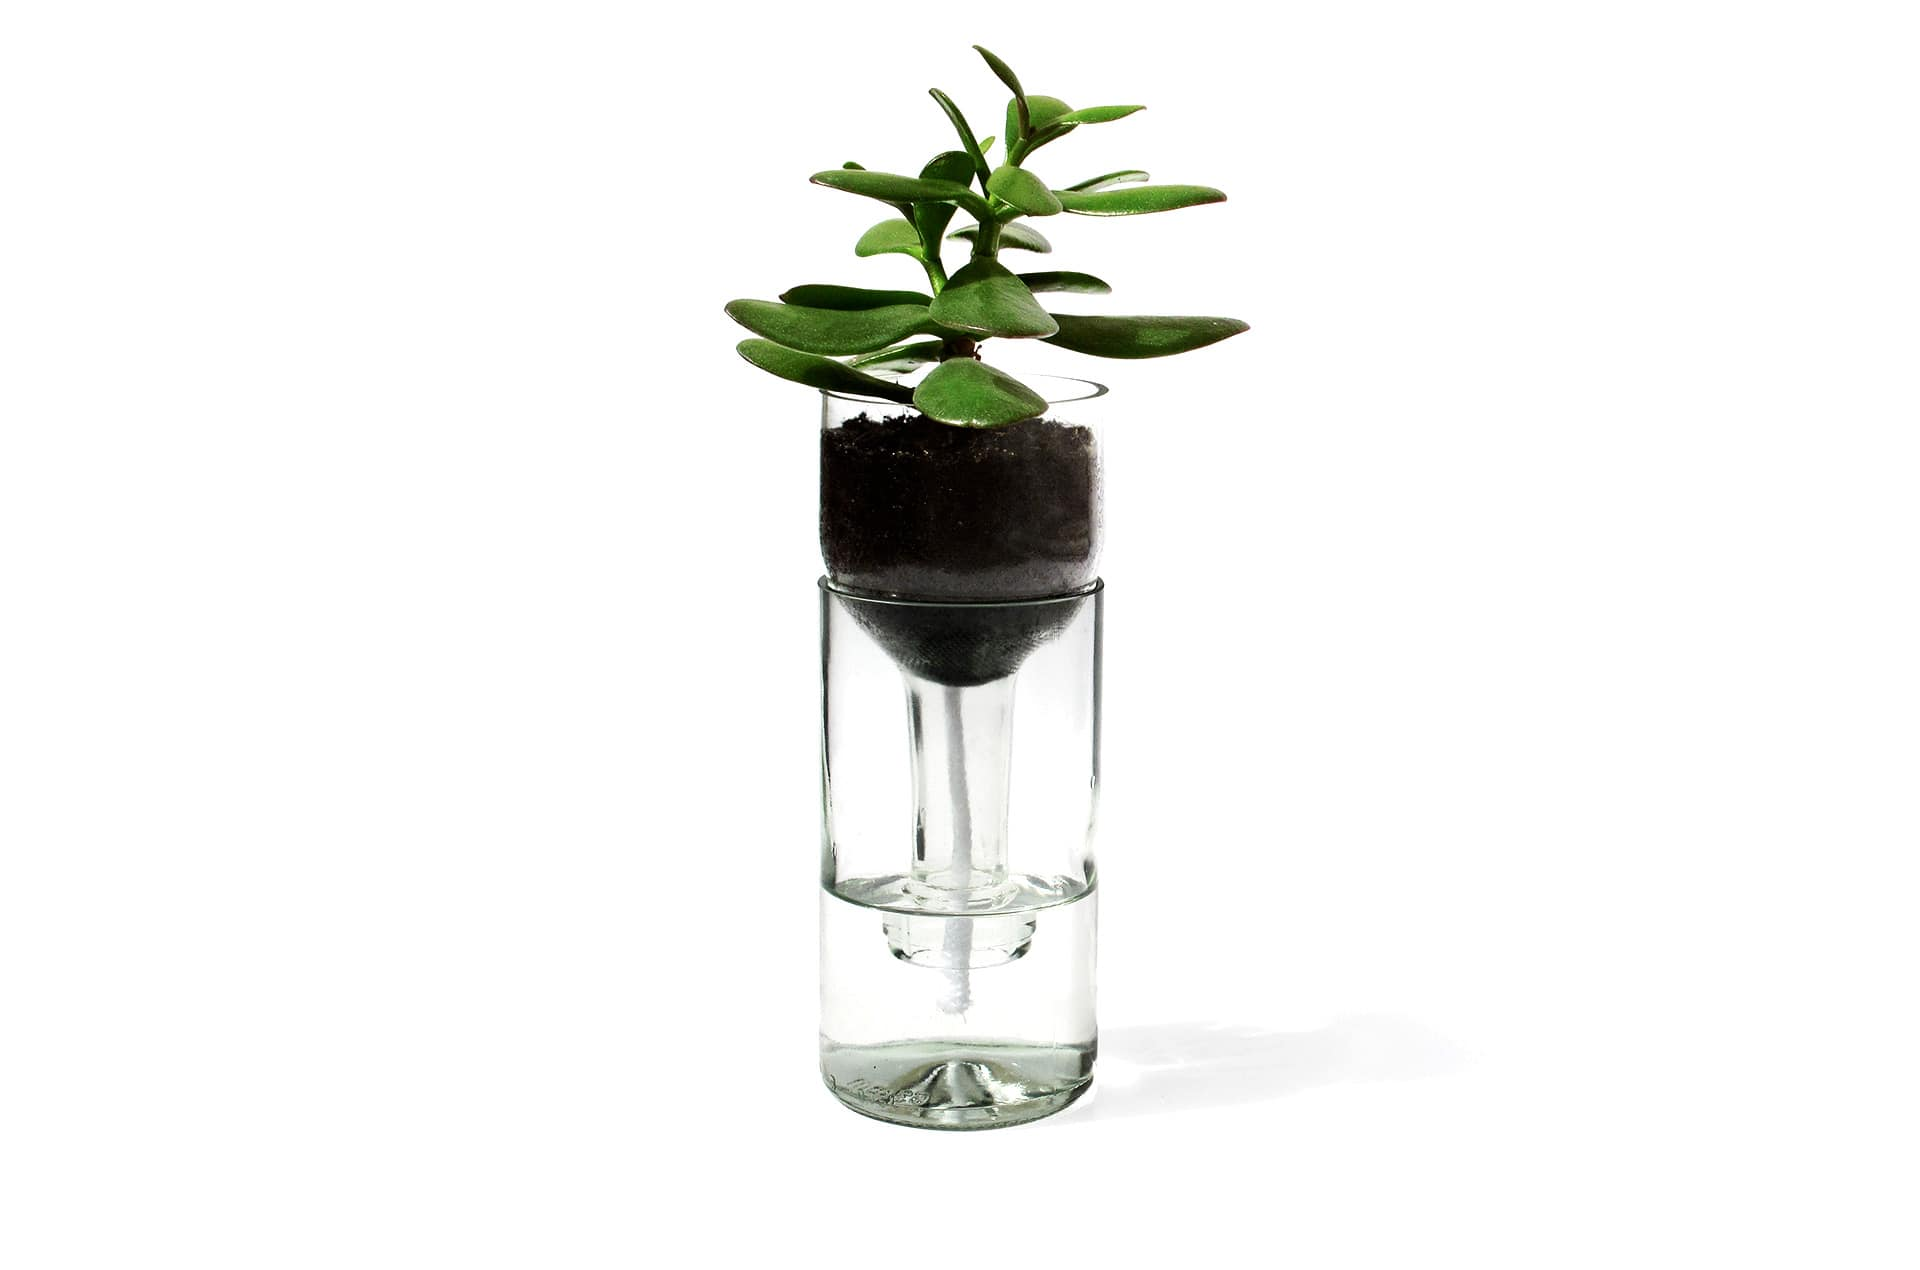 Jardinière autonome Watering Bottle by SideBySide-1-PARIDEO design durable